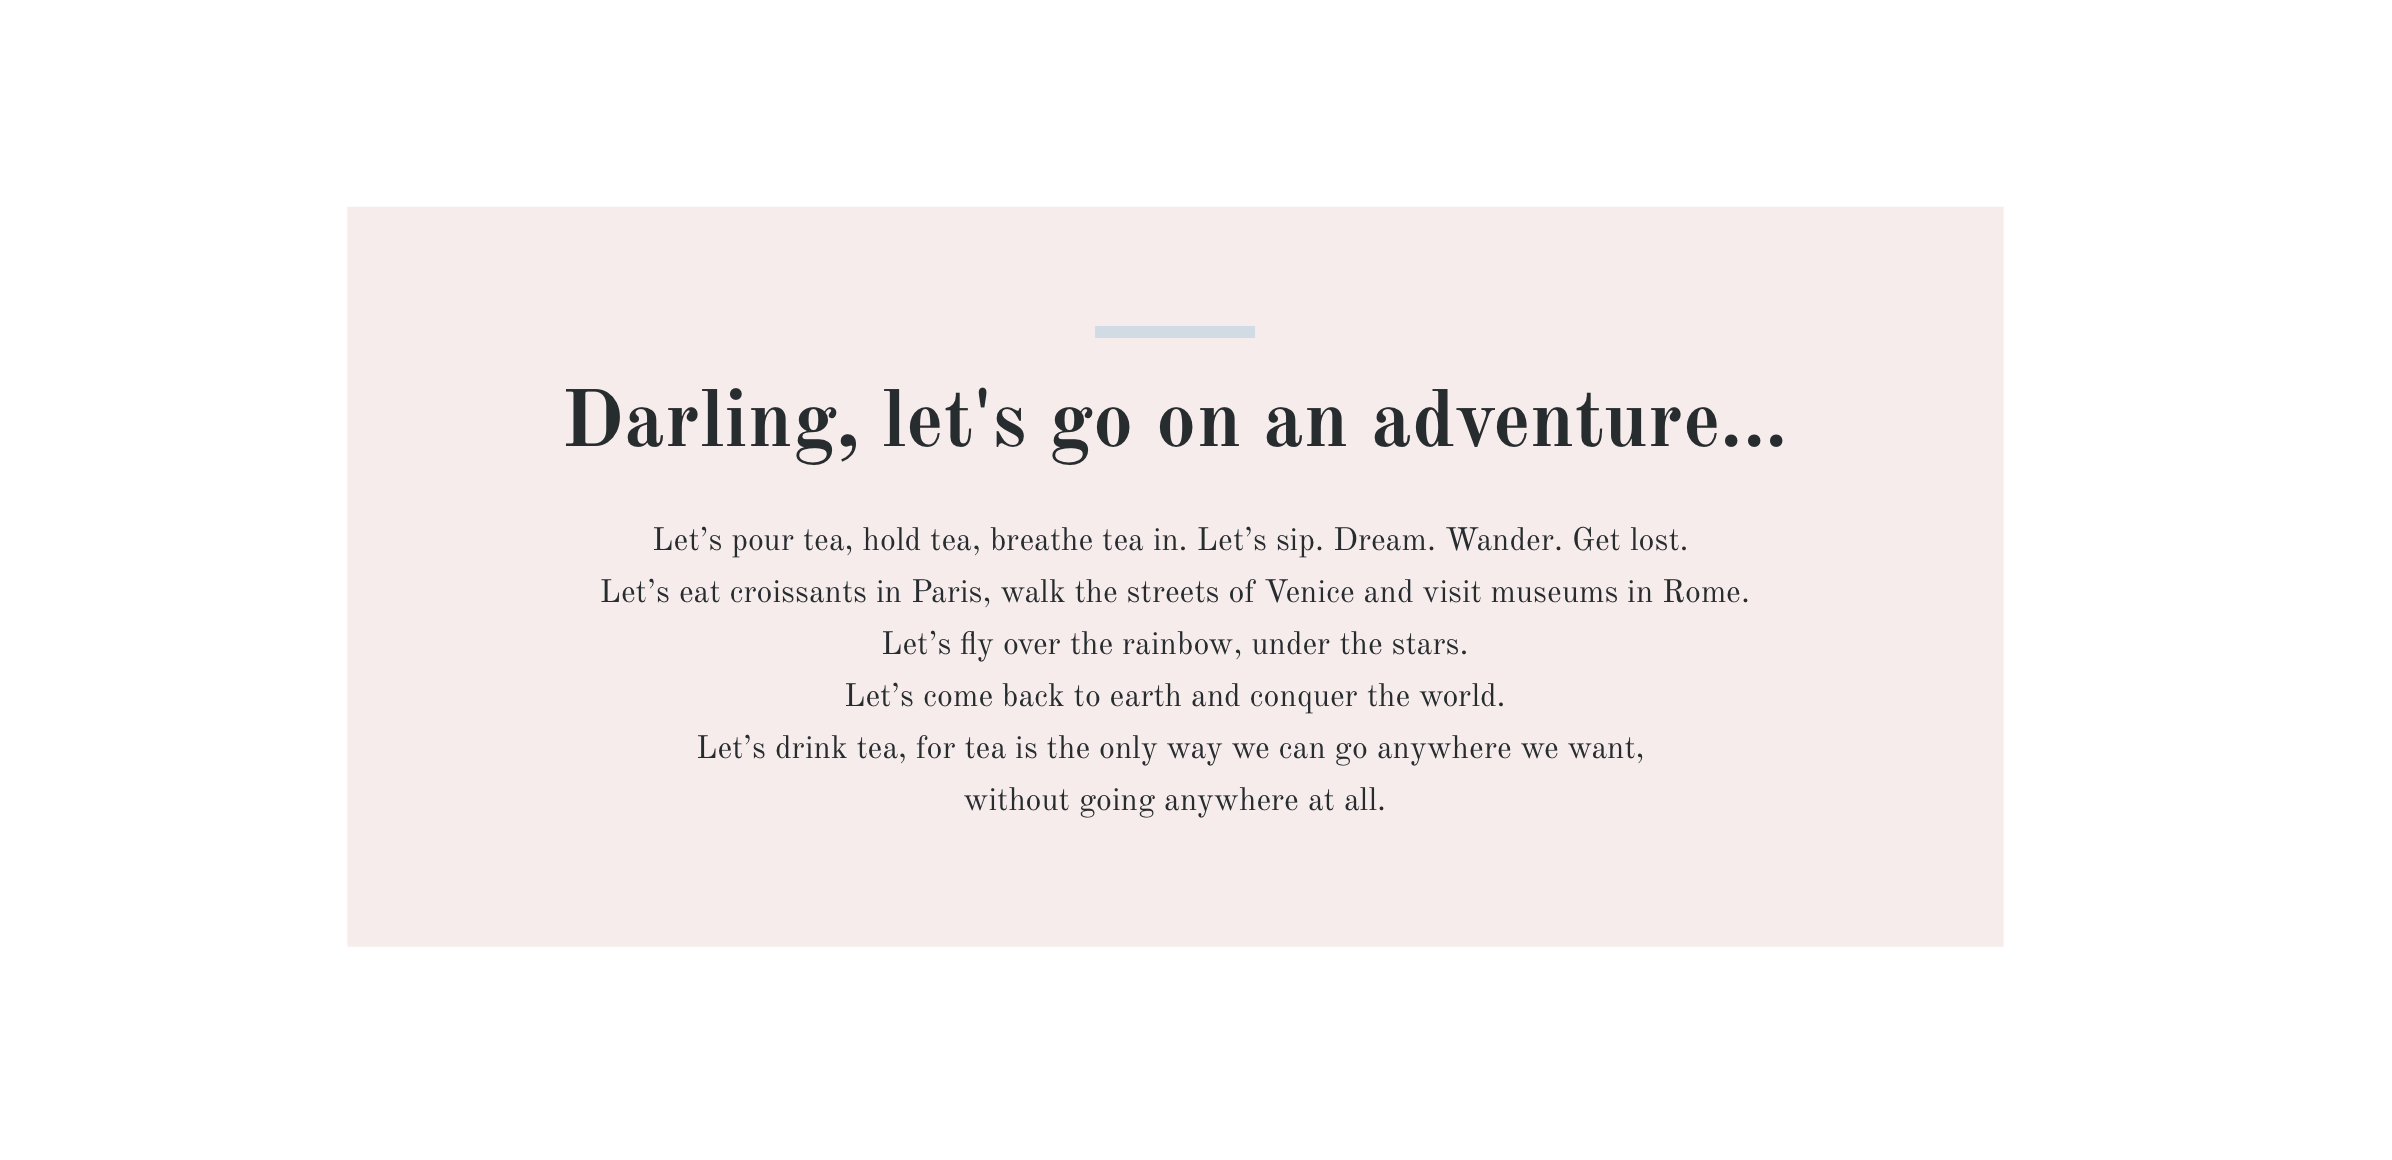 Amity Created Copy Mockup - Darling Let's Go On An Adventure...